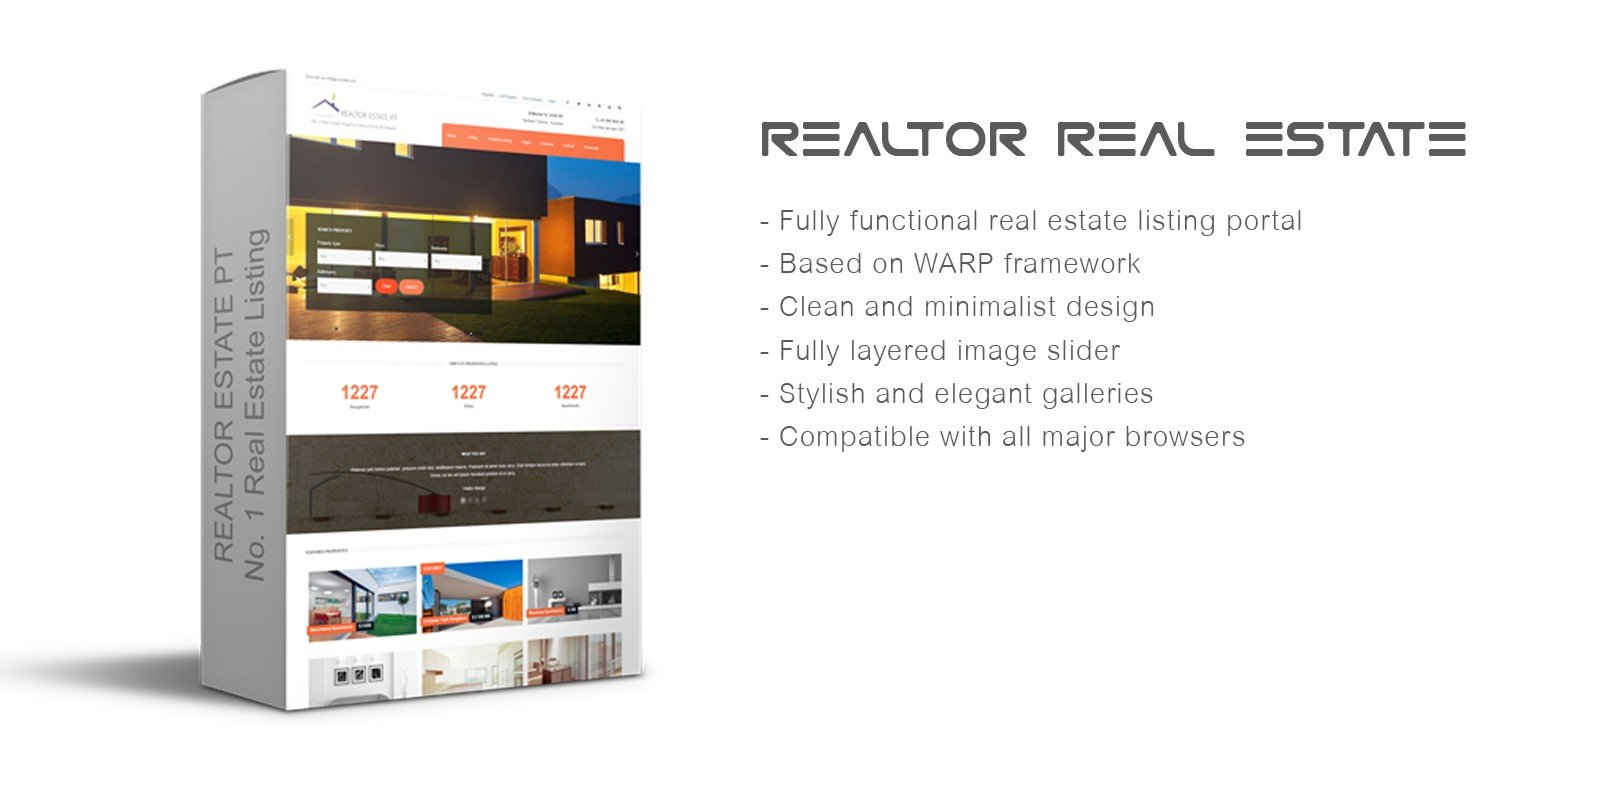 Realtor Real Estate Joomla Template